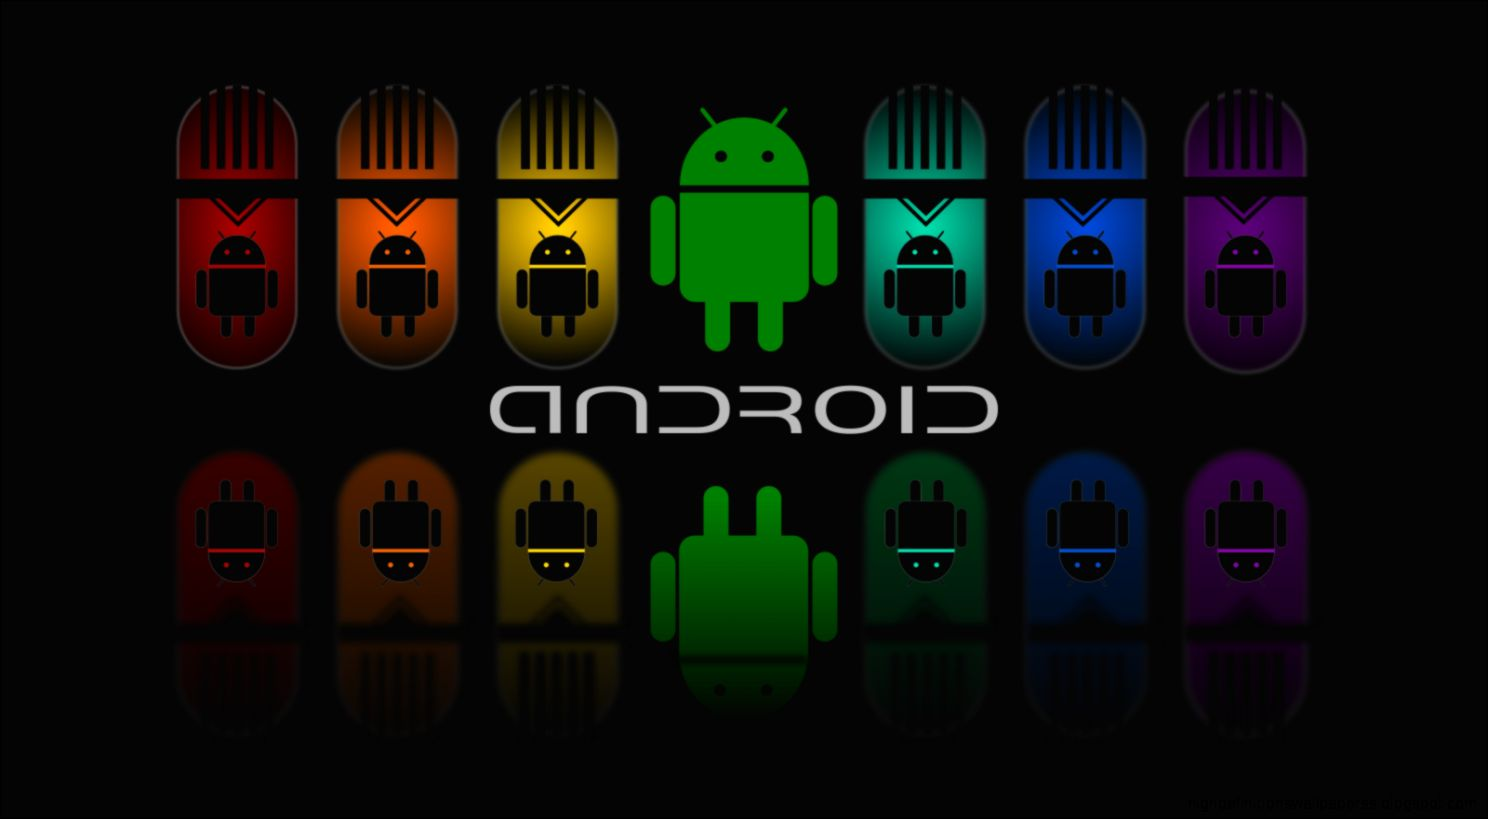 Android Full Colour Dark Hd Wallpaper High Definitions Wallpapers